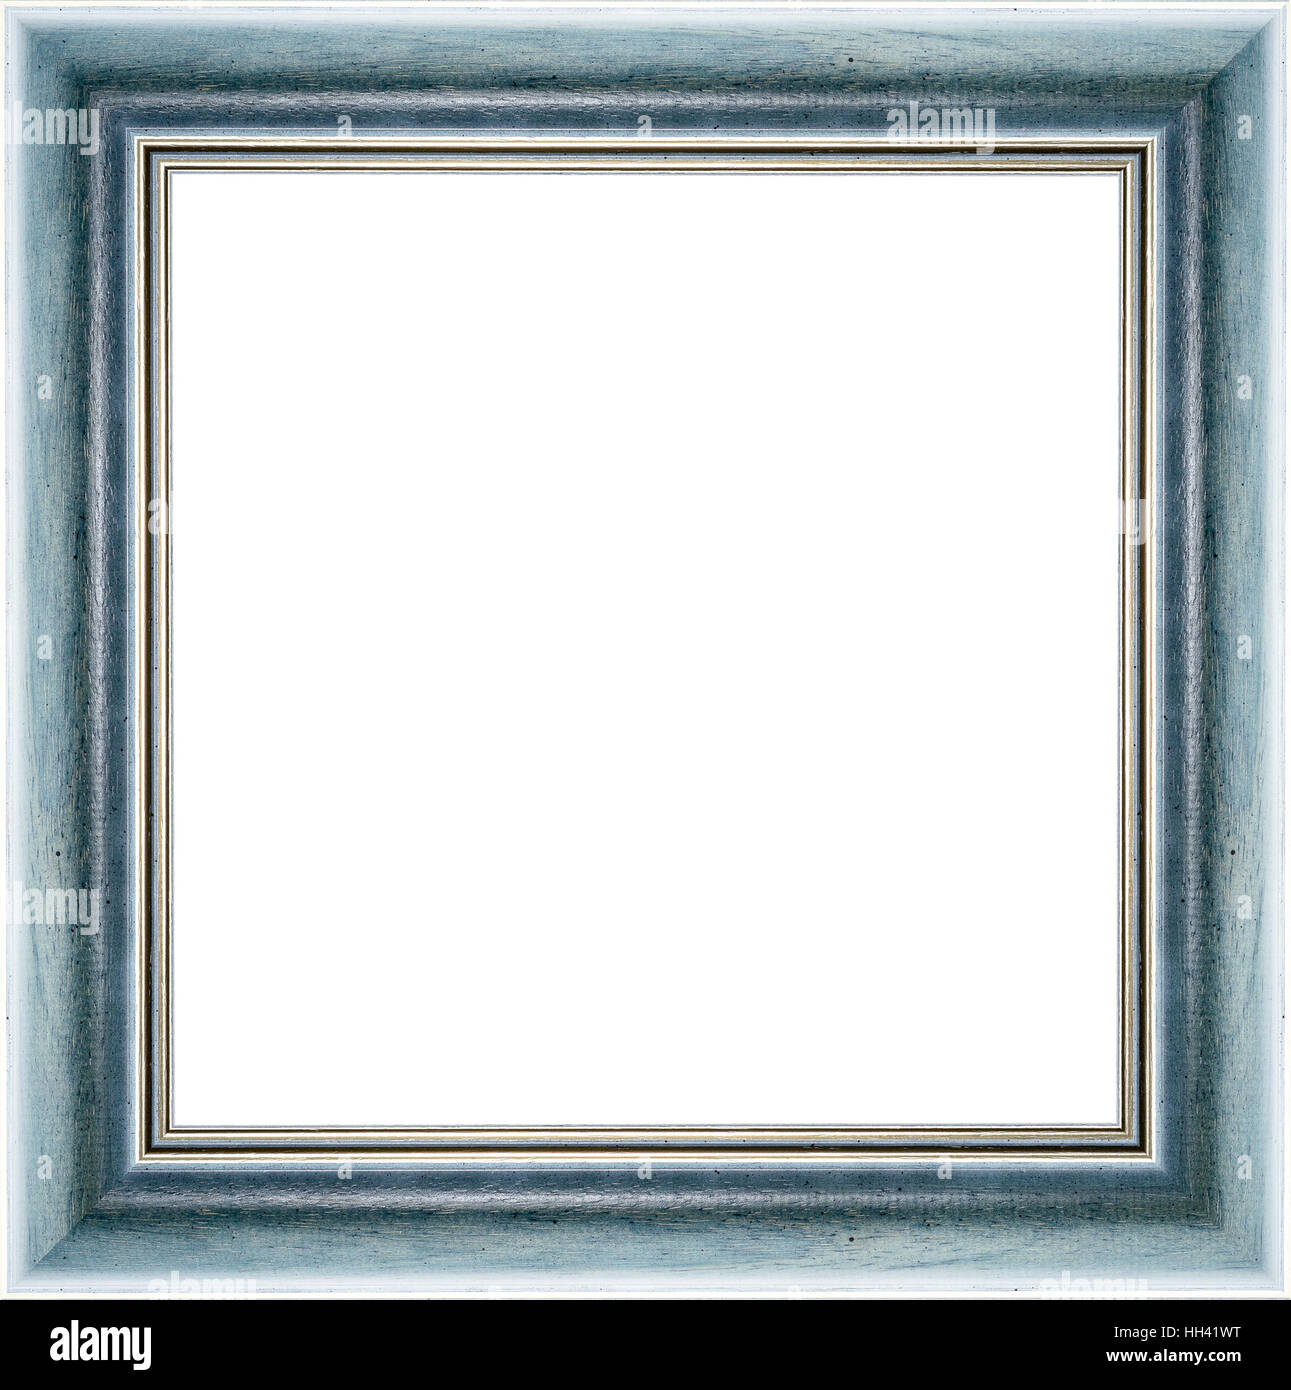 Wooden blue vintage picture frame isolated on white background. High ...